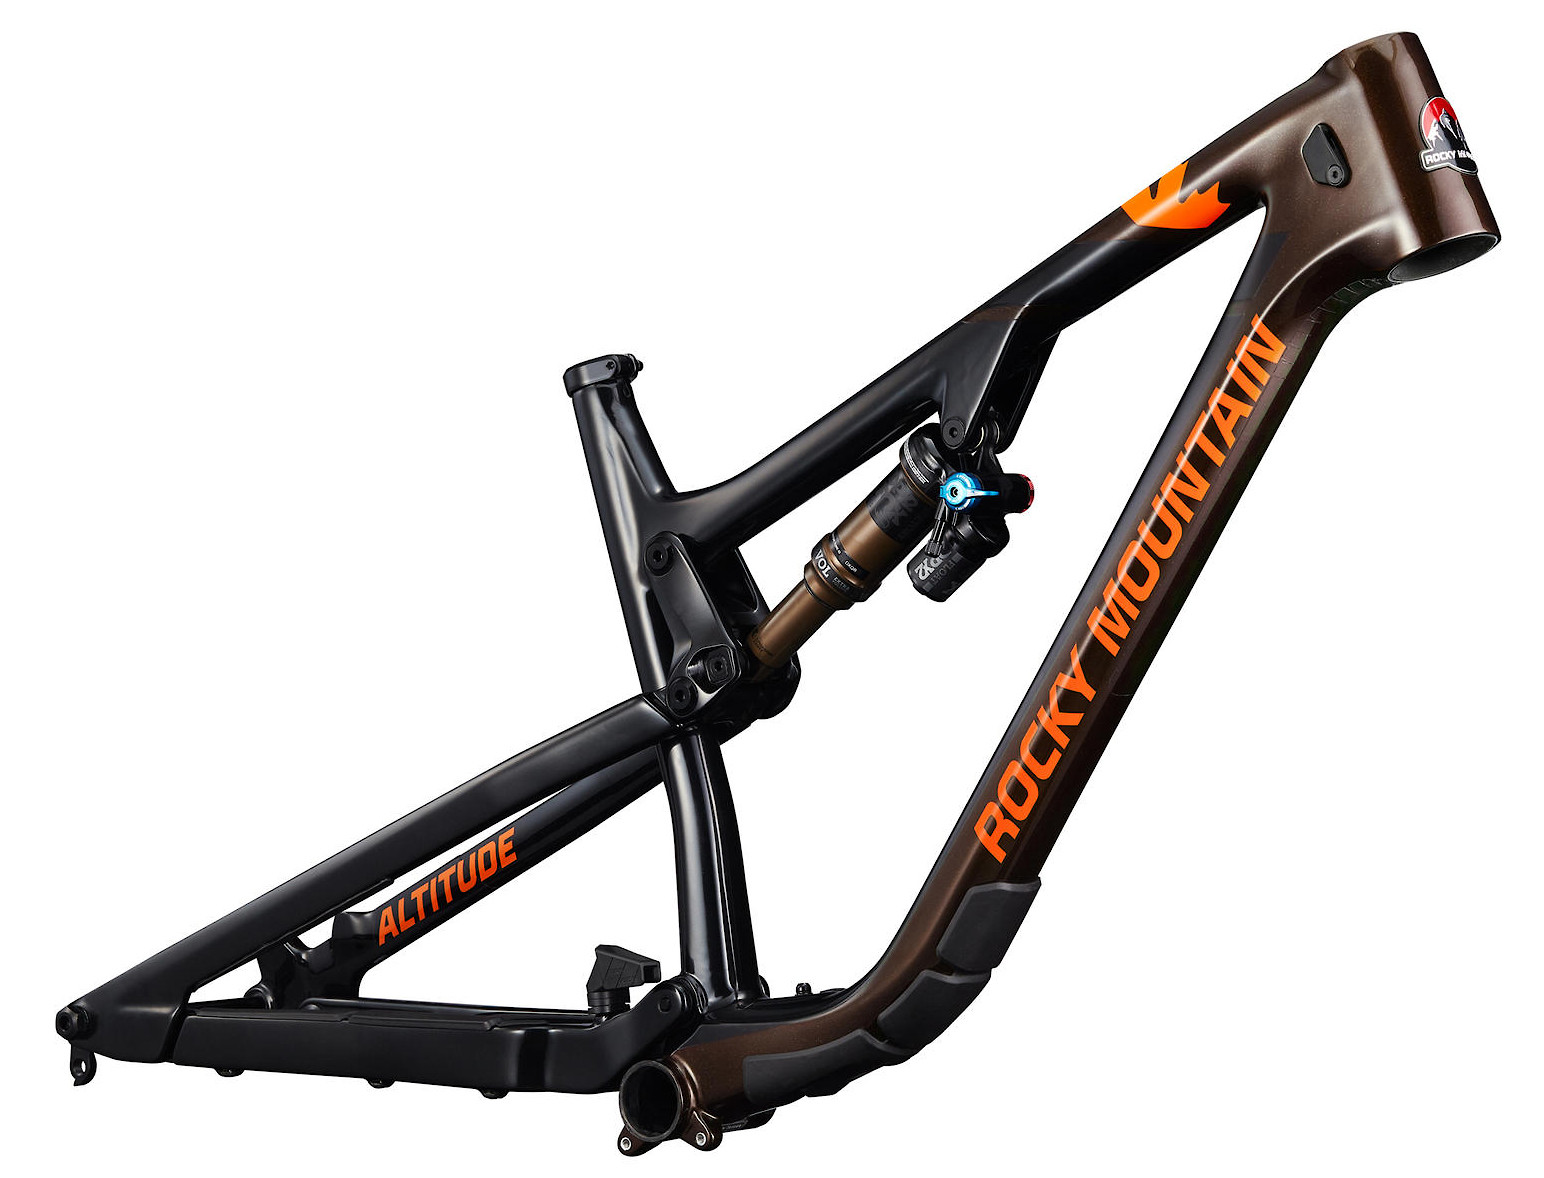 2020 Rocky Mountain Altitude Carbon Frame Black Brown and Orange